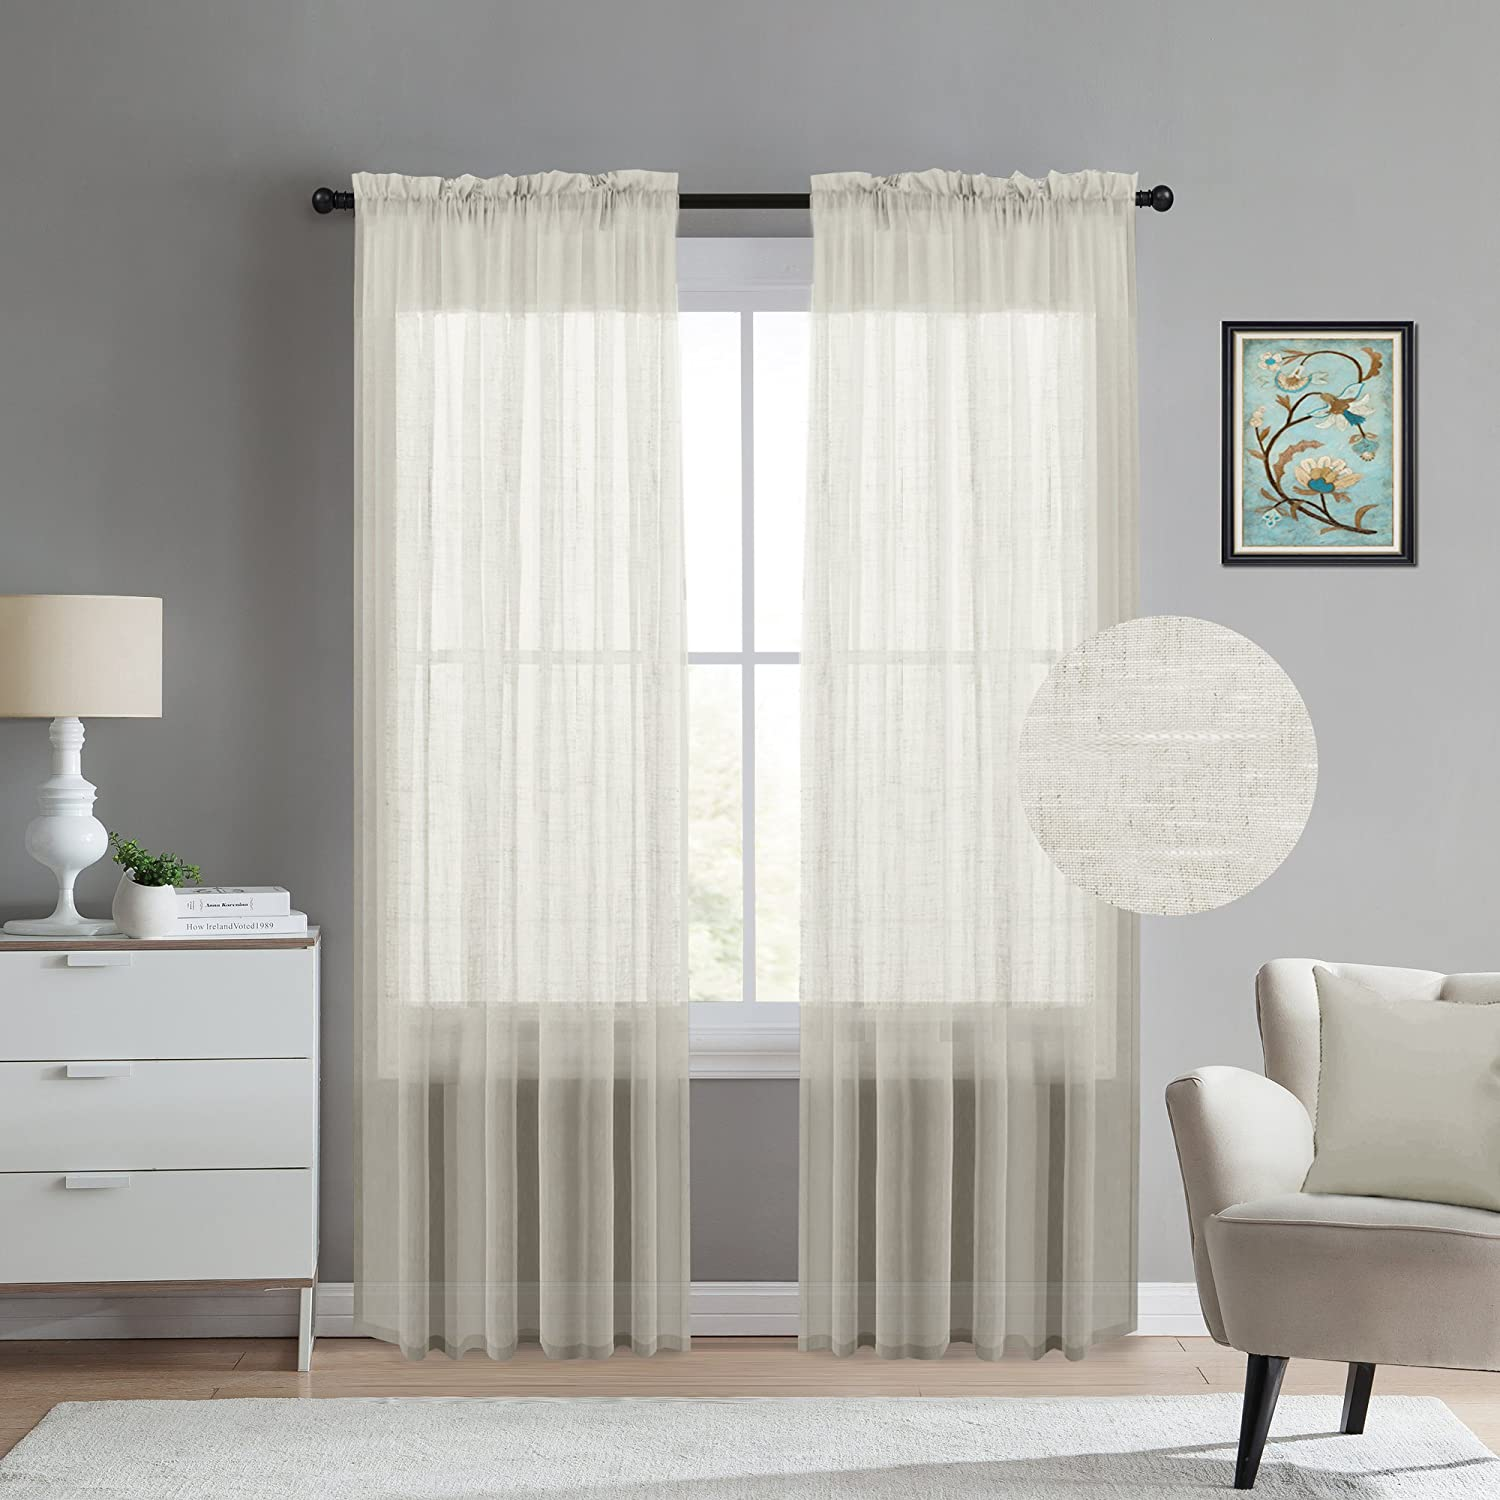 Amazon.com: Linen Blended Sheer Window Curtains for Living Room ...